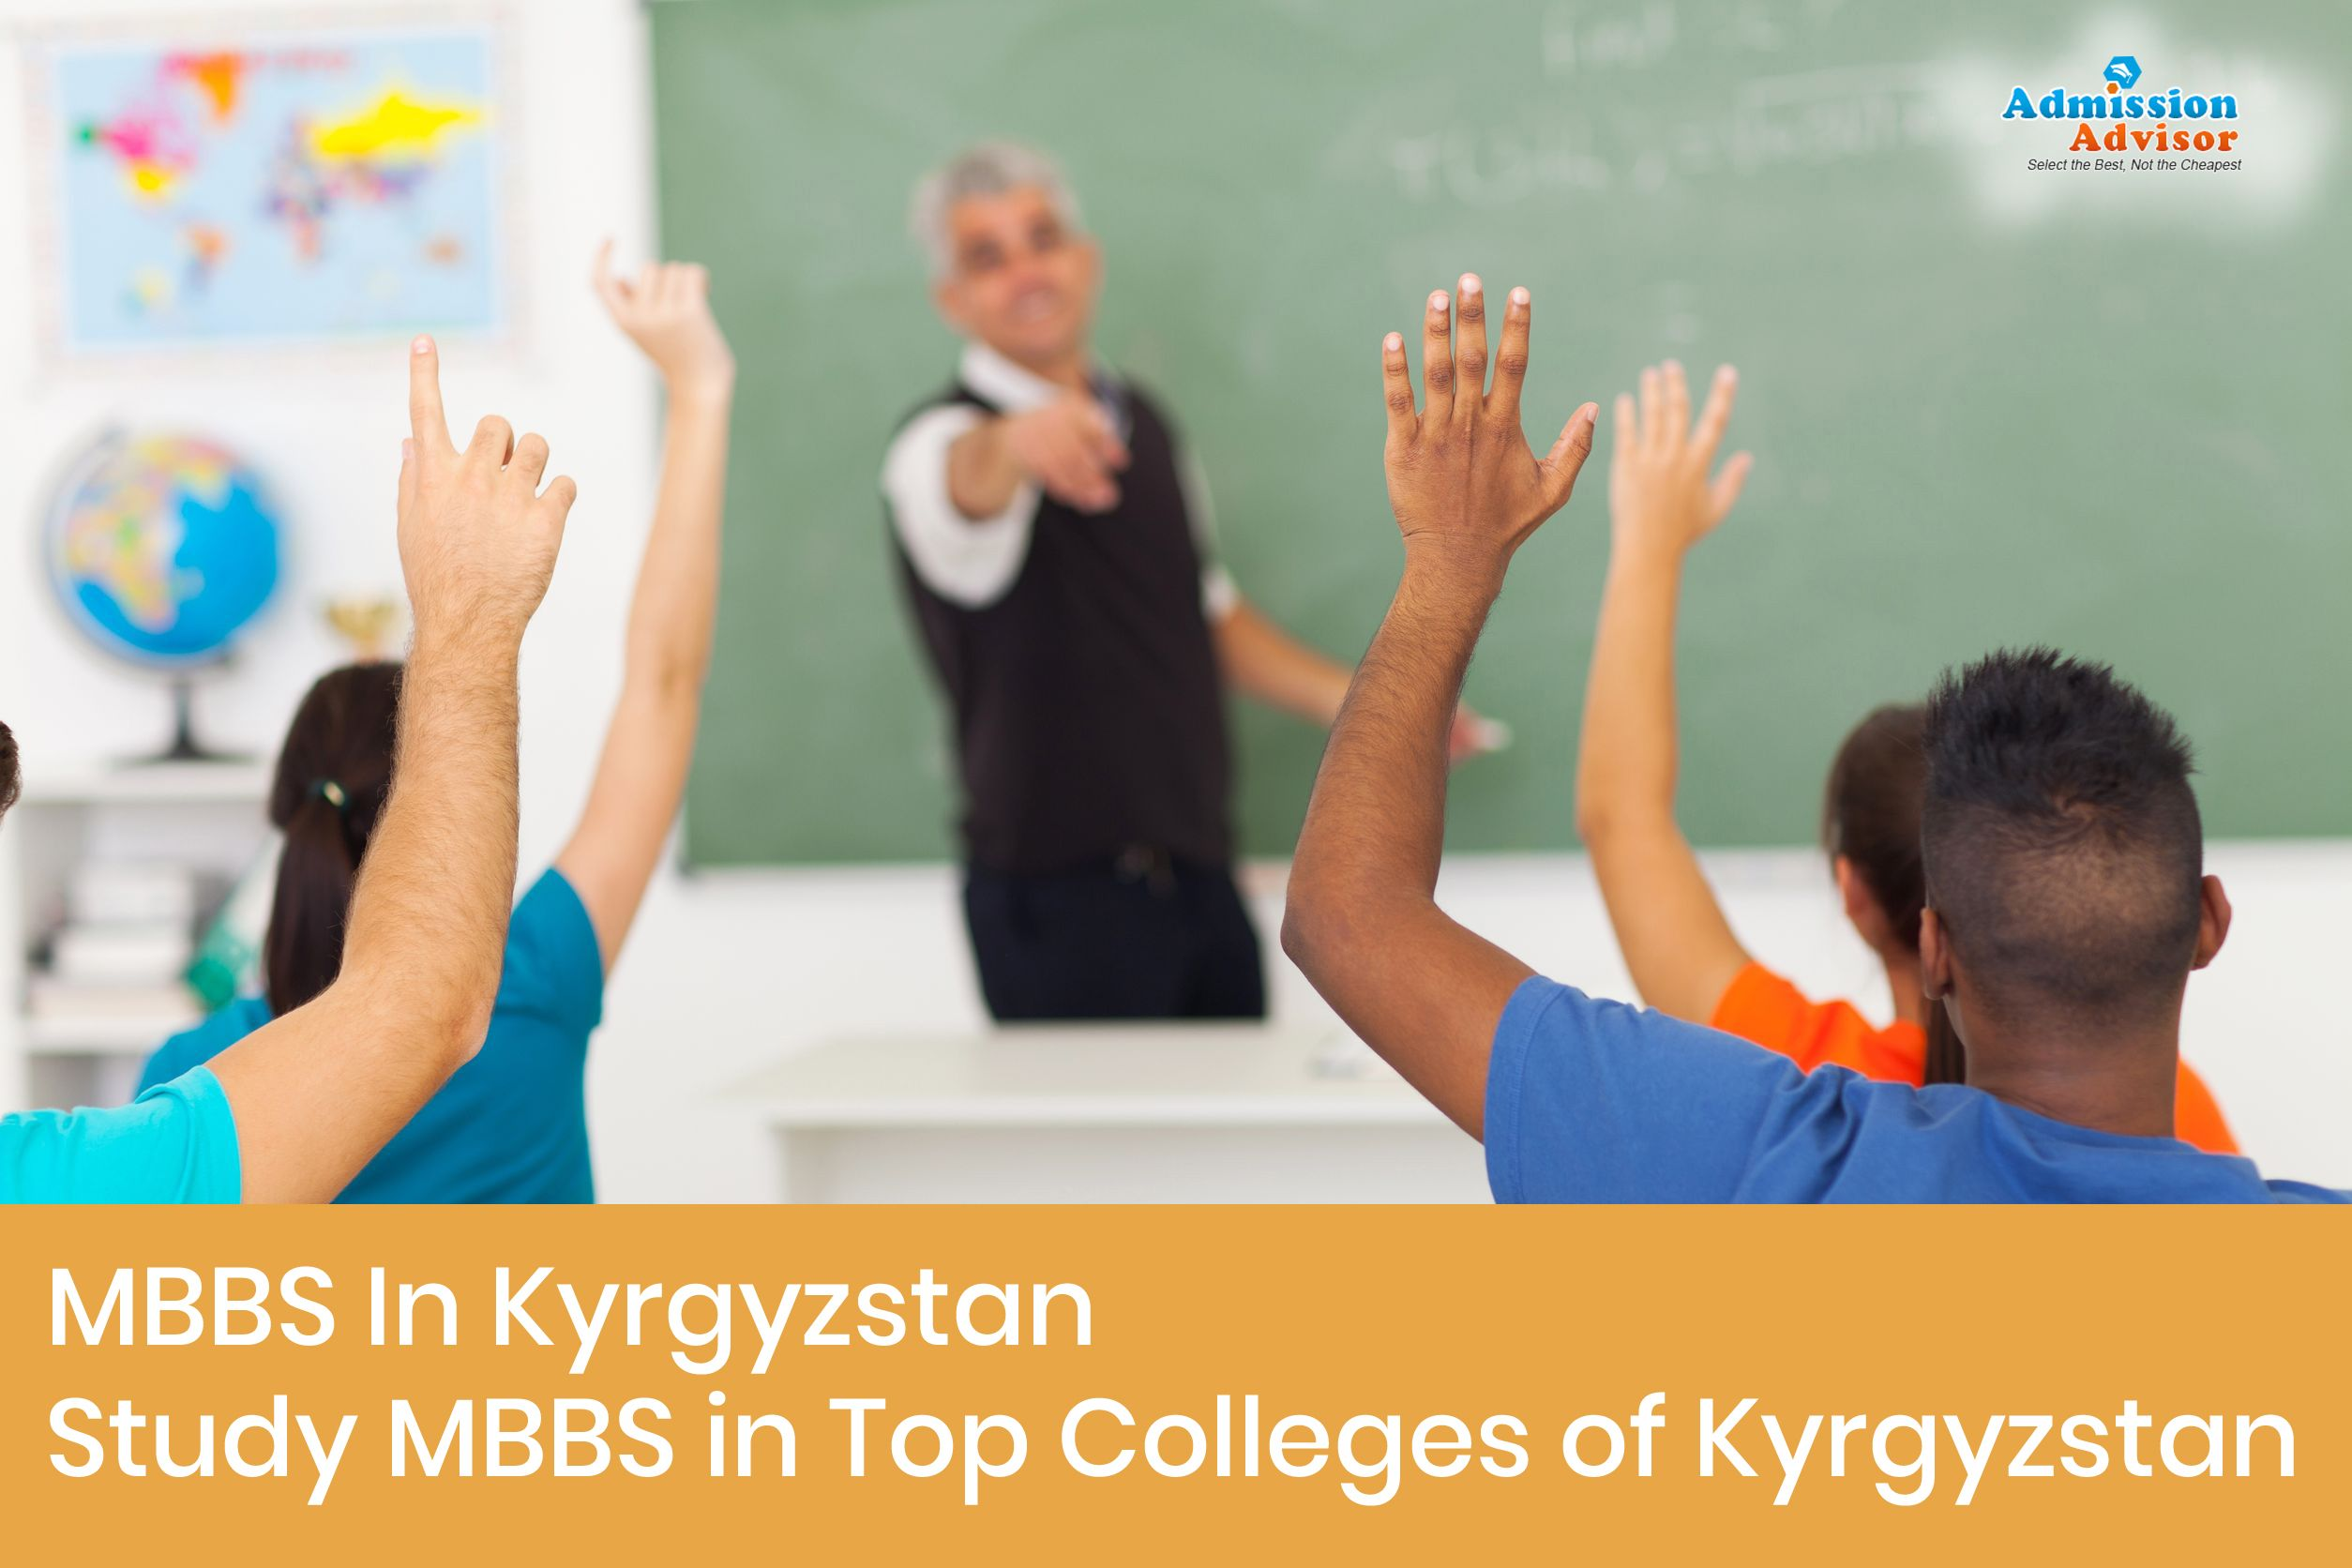 Get direct admission in Kyrgyzstan and make your dream of